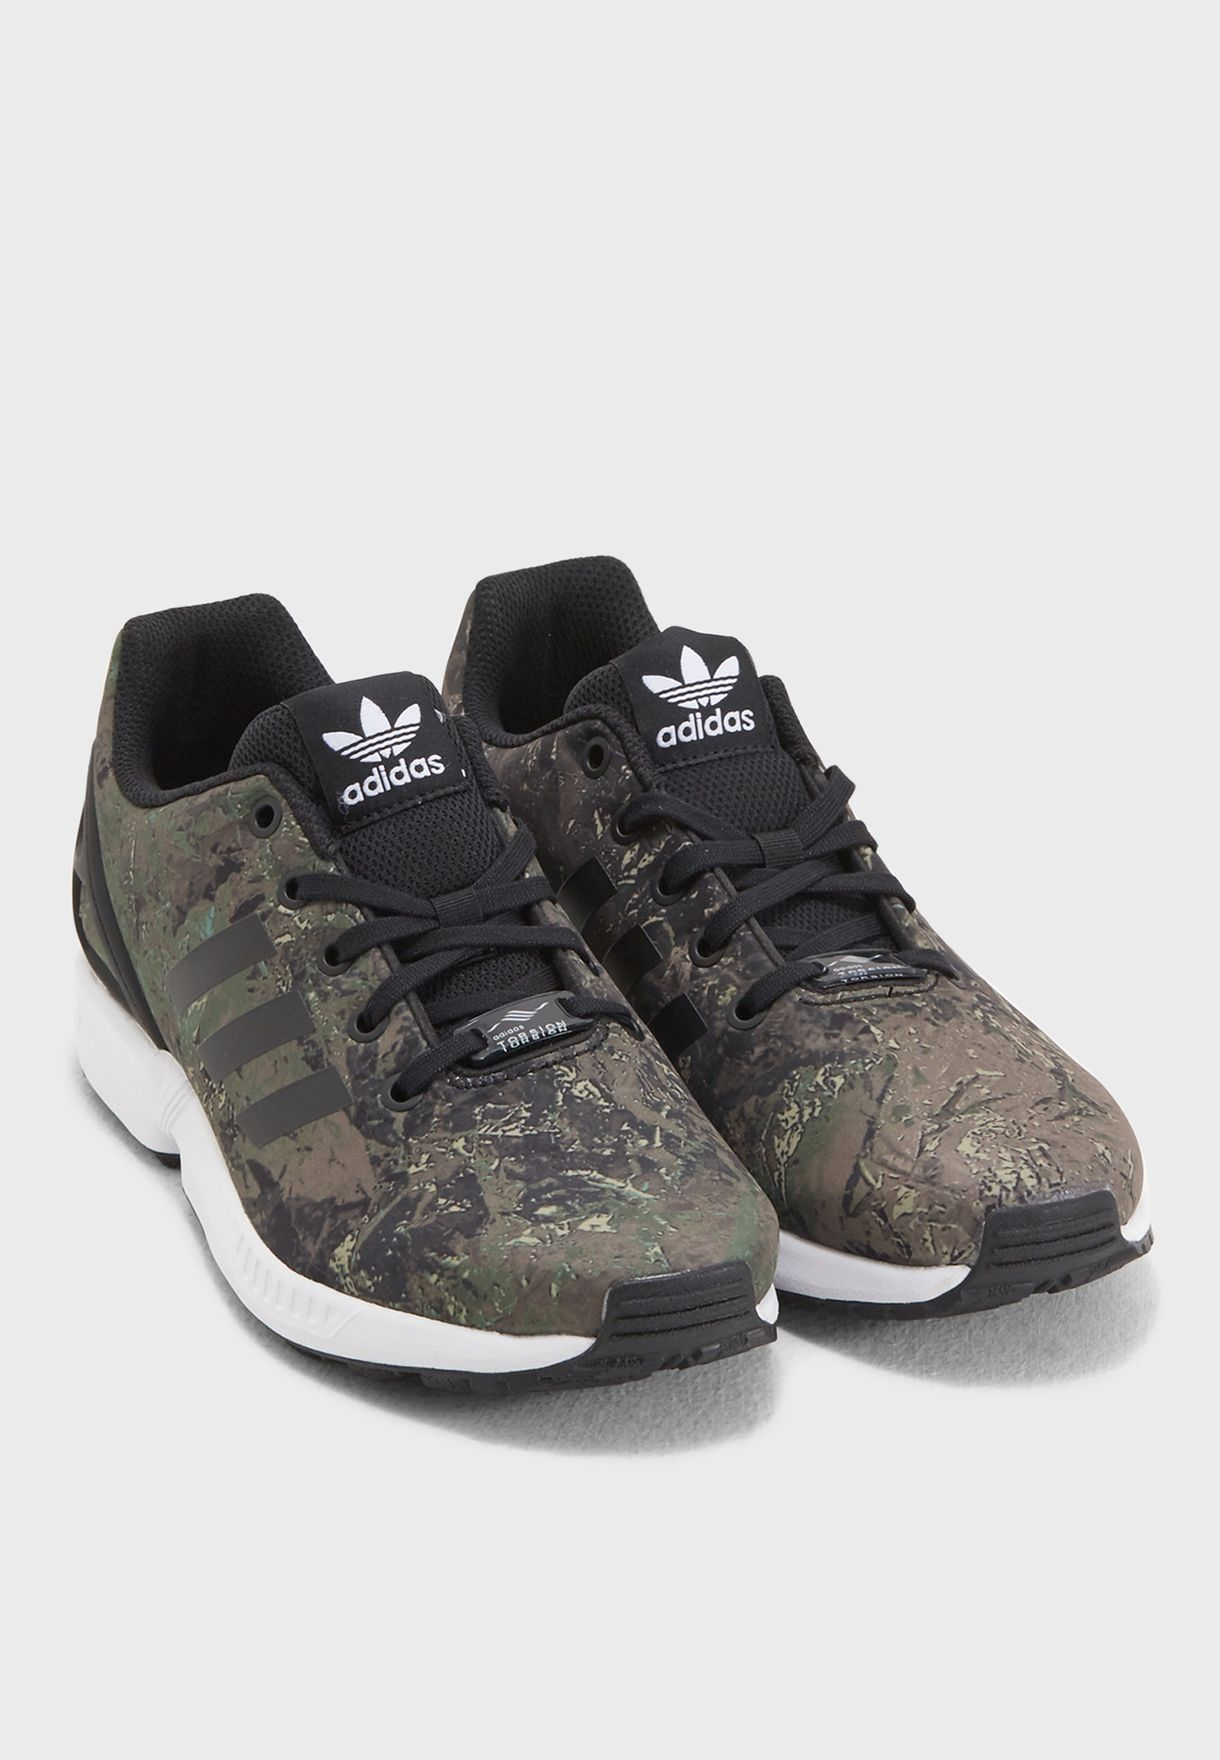 478417063b9 Shop adidas Originals prints ZX Flux Youth CM8134 for Kids in Saudi ...